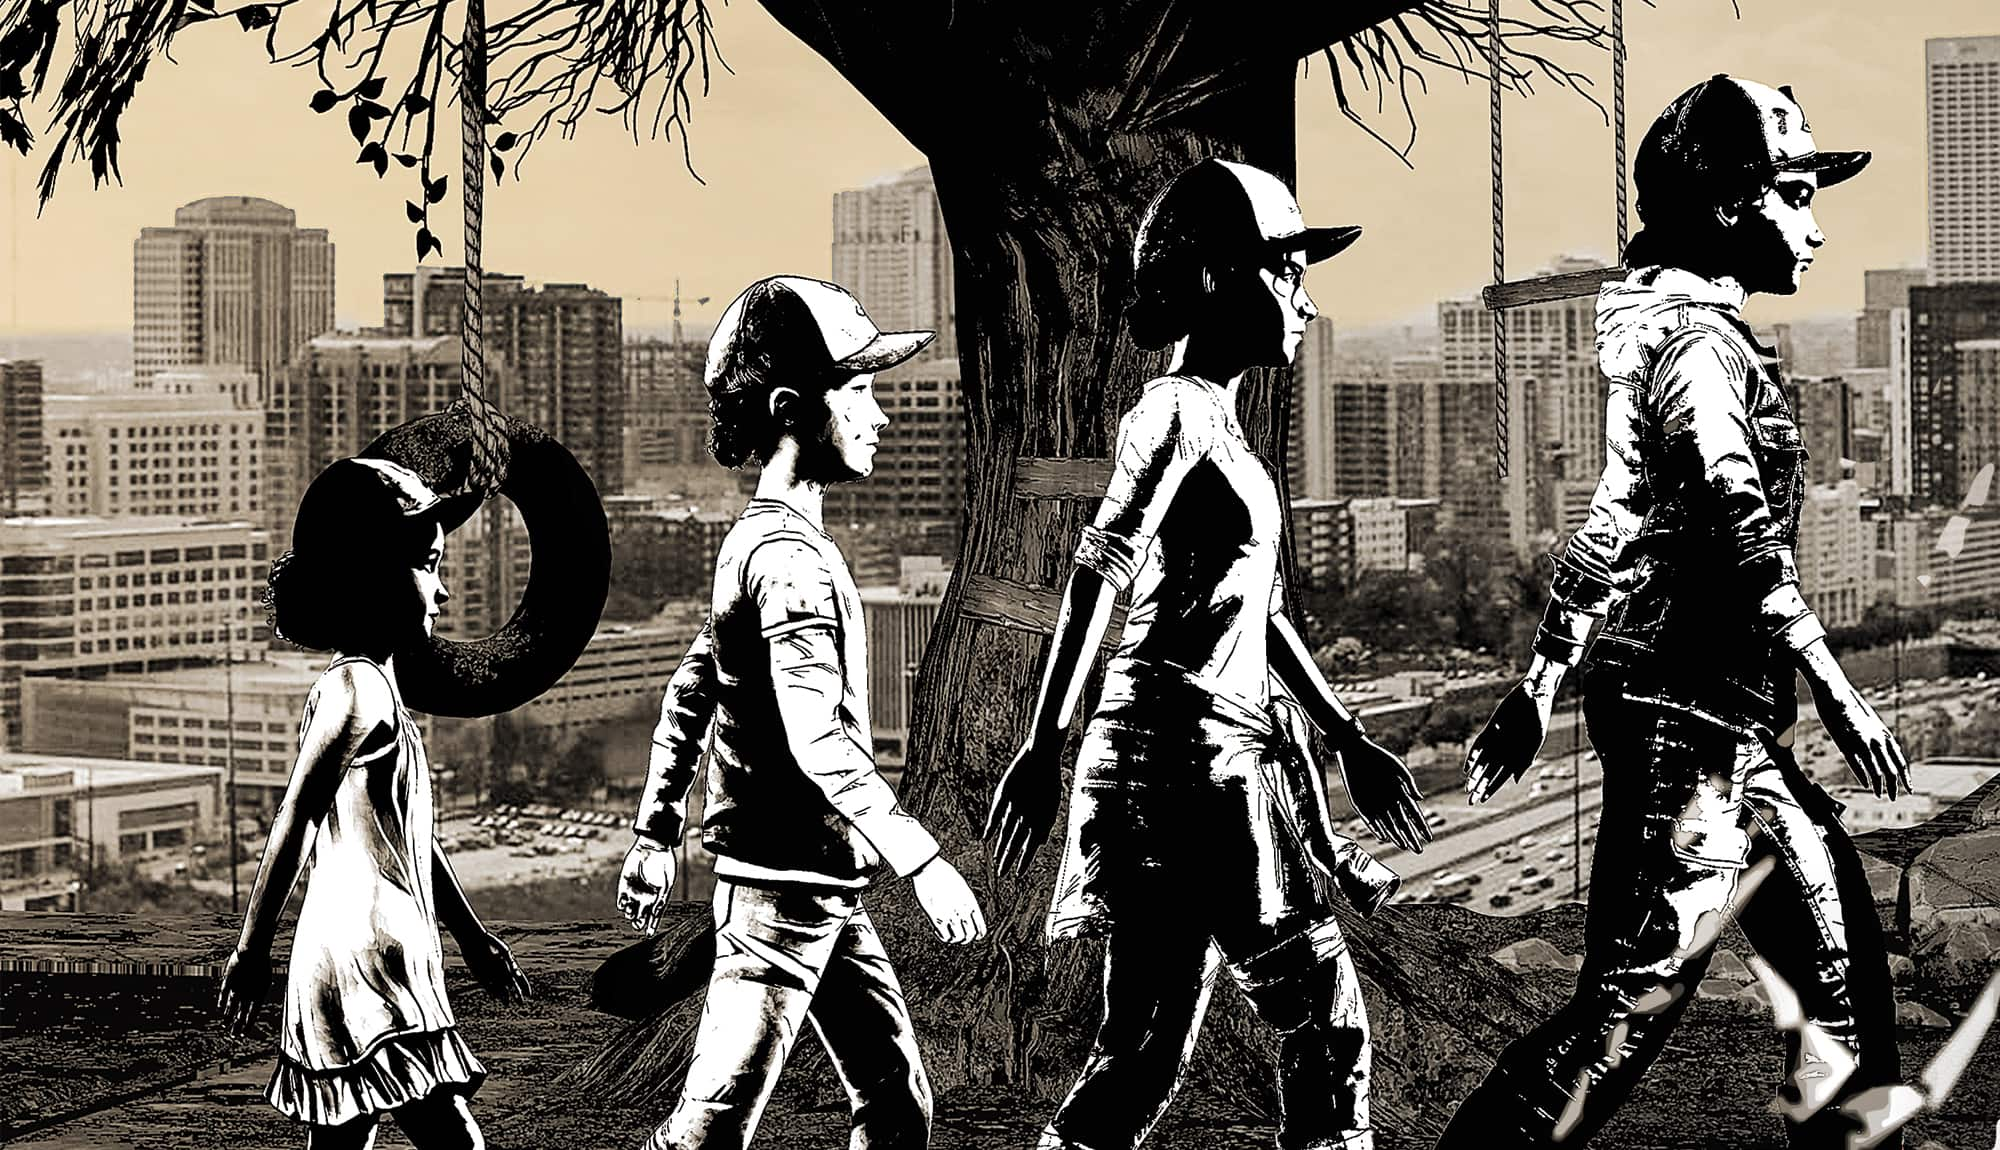 Introducing Telltale's The Walking Dead - The Definitive